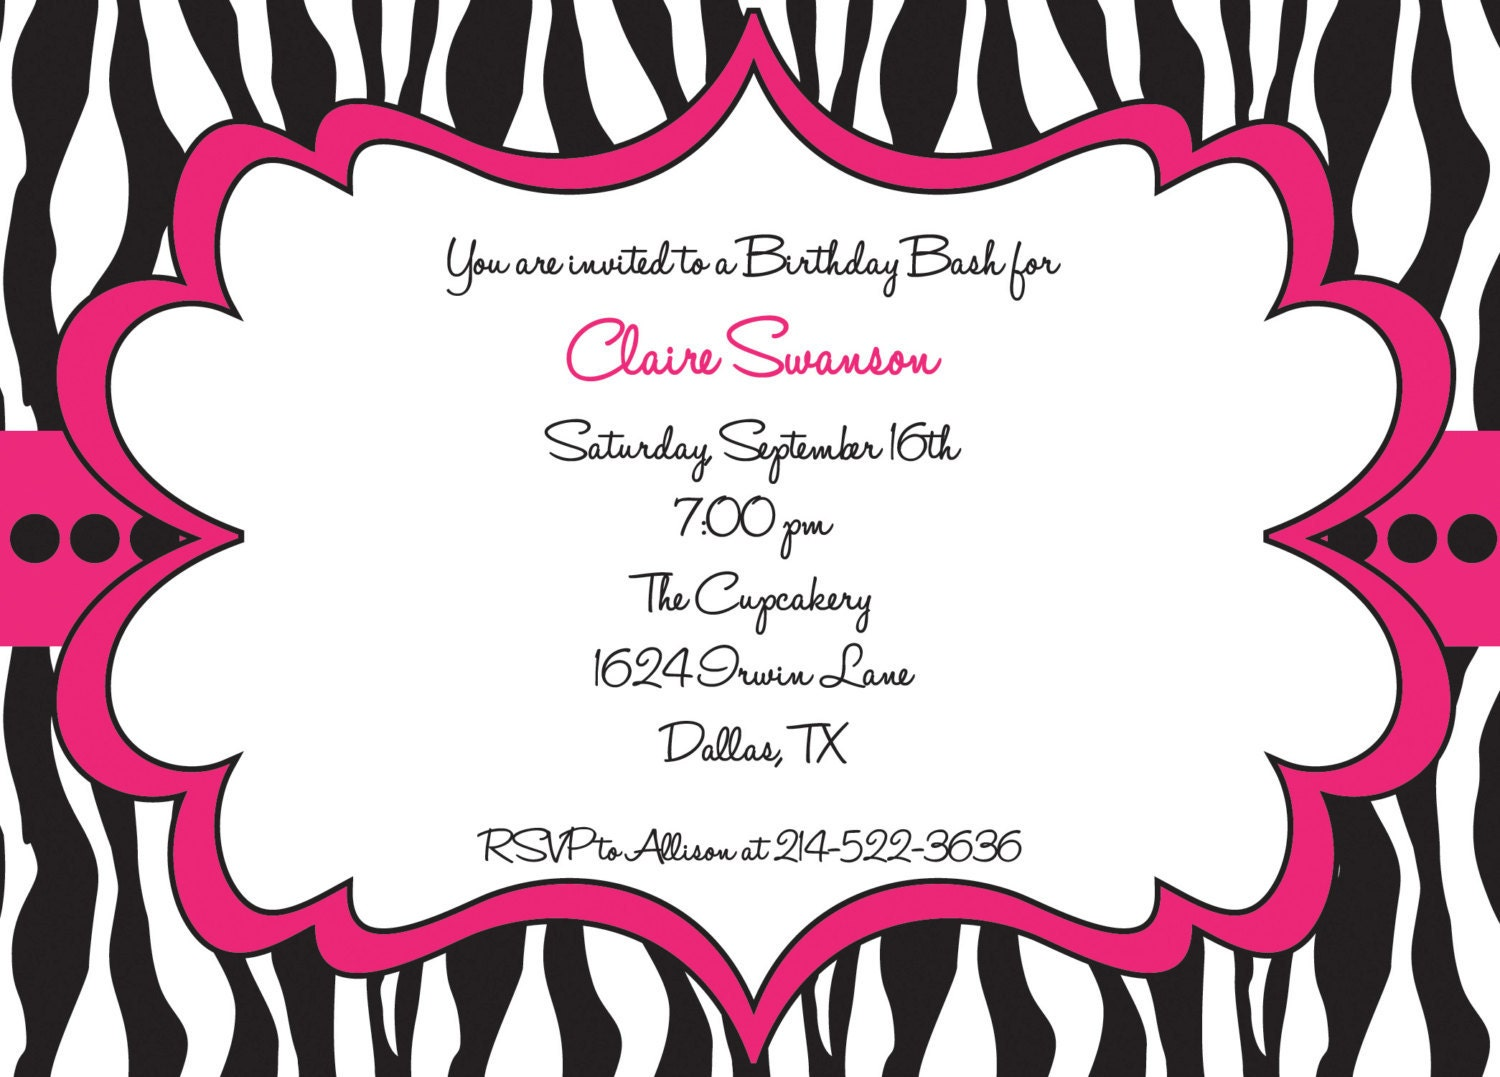 Pamper Party Invite for nice invitations sample